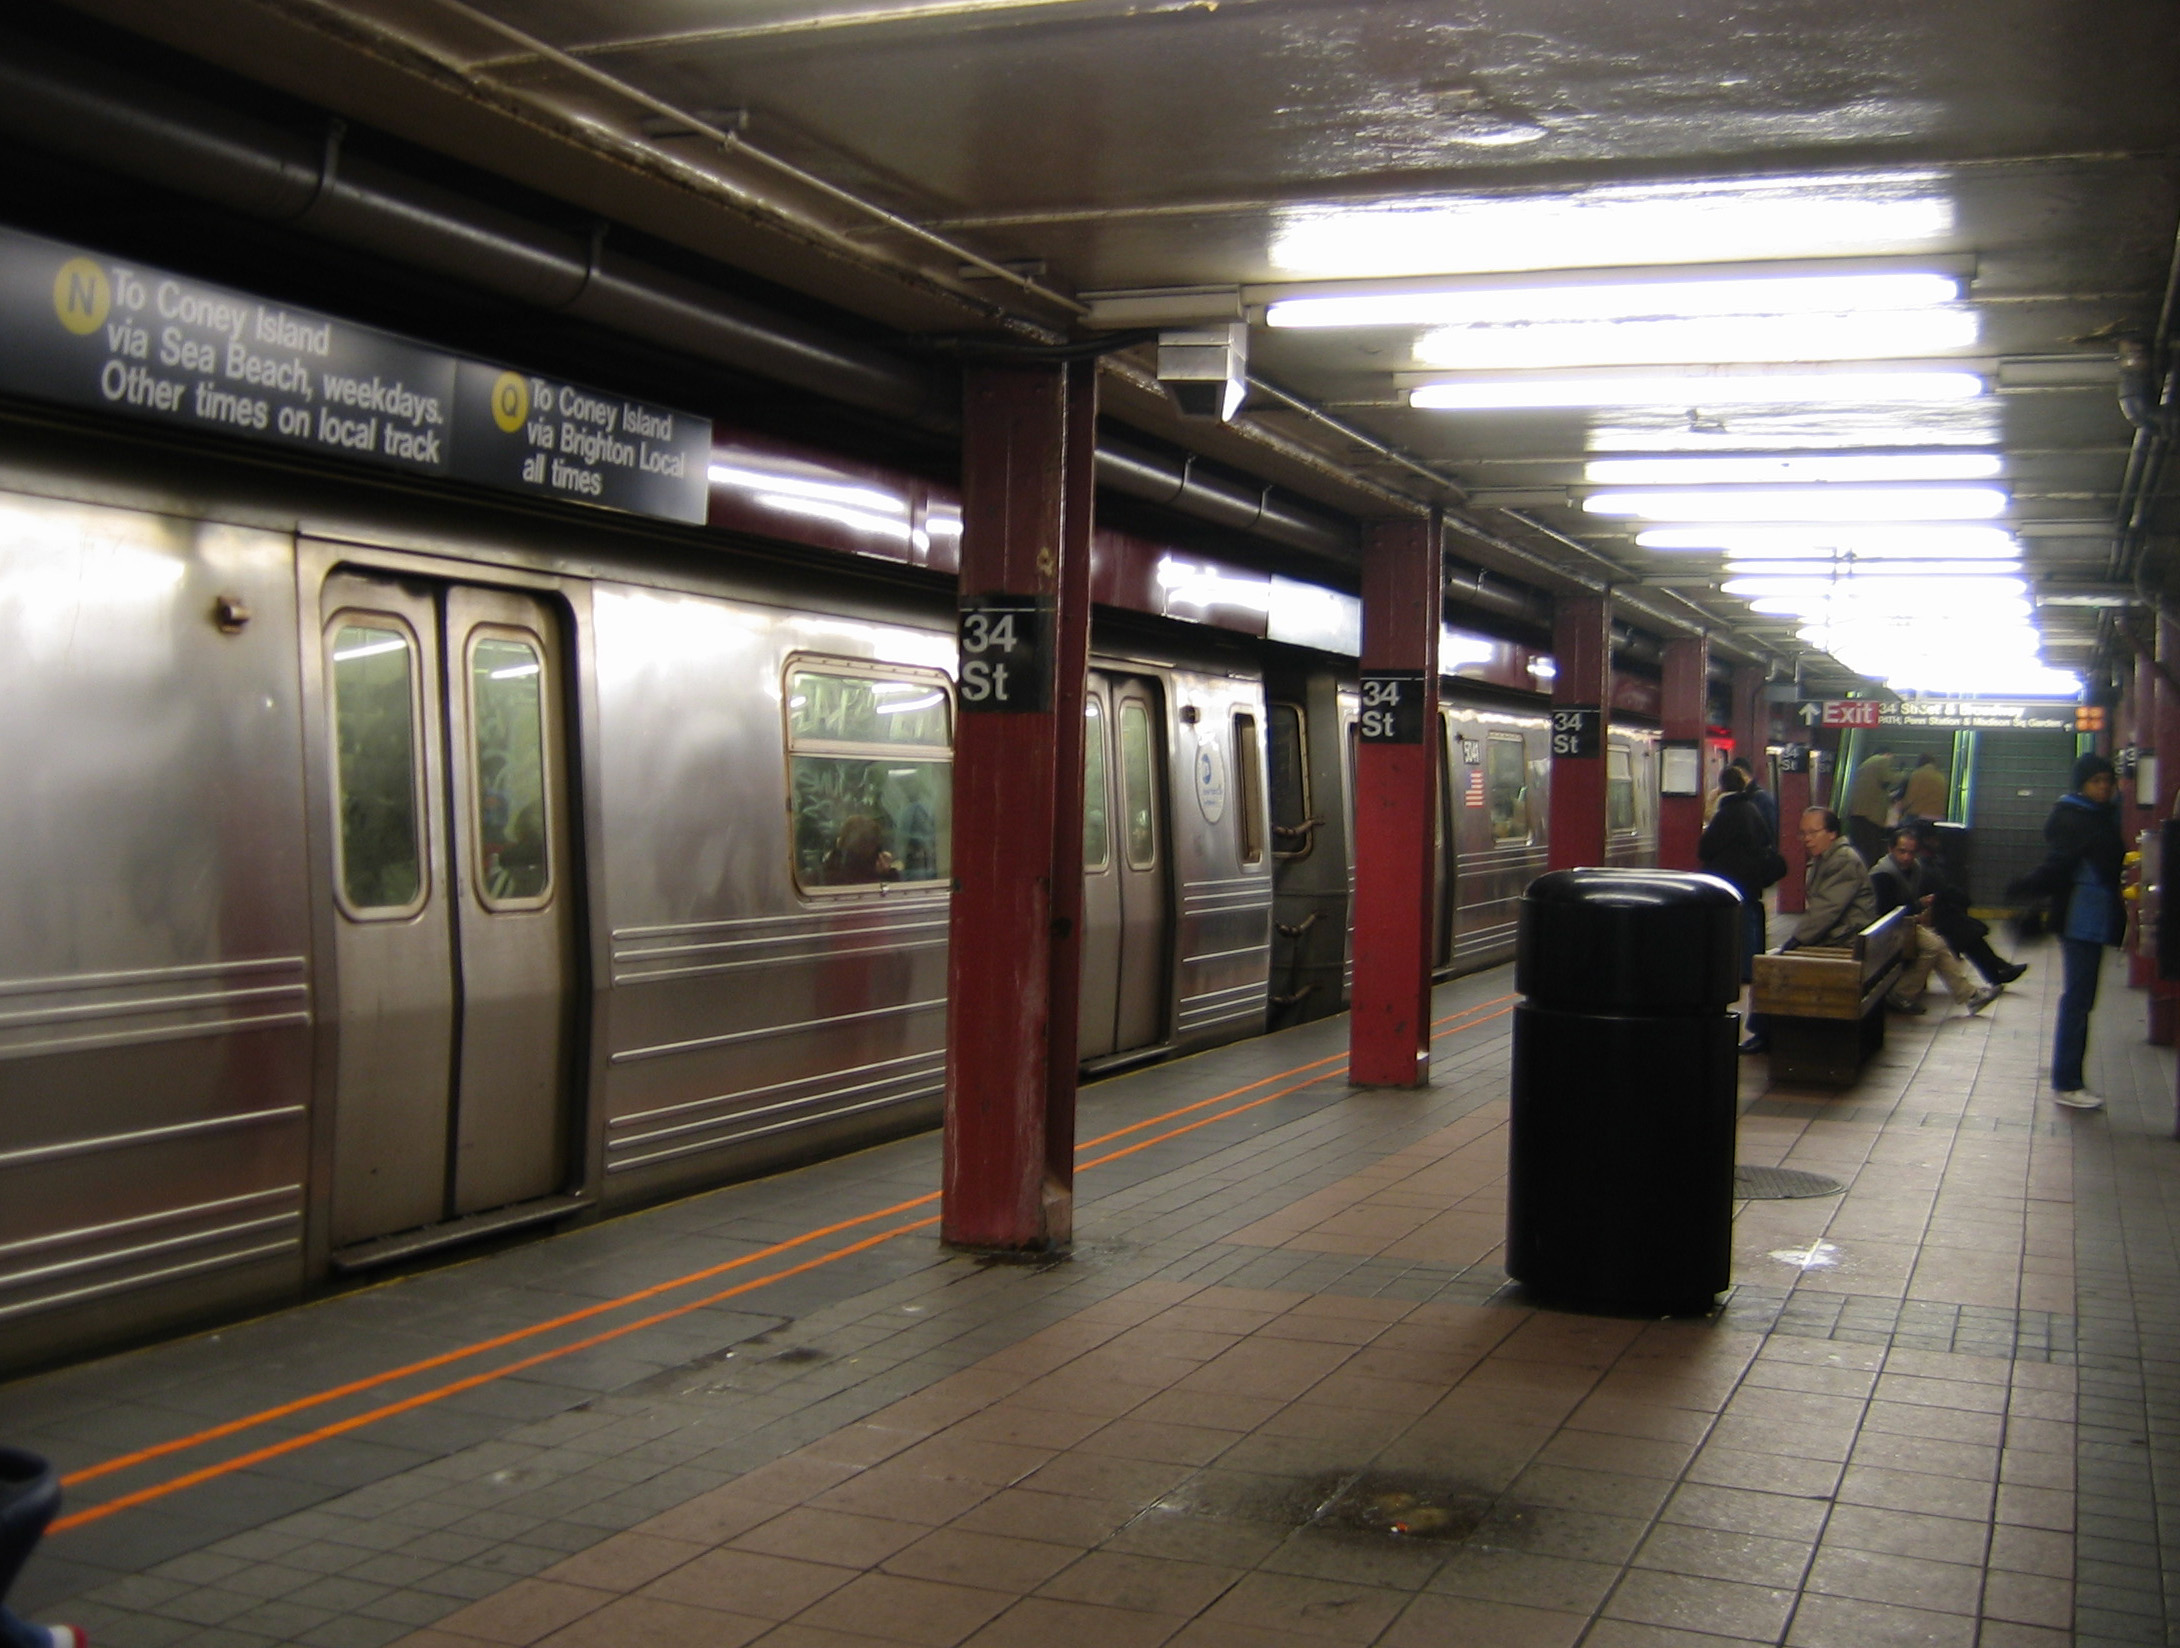 nyc_subway_34st_station